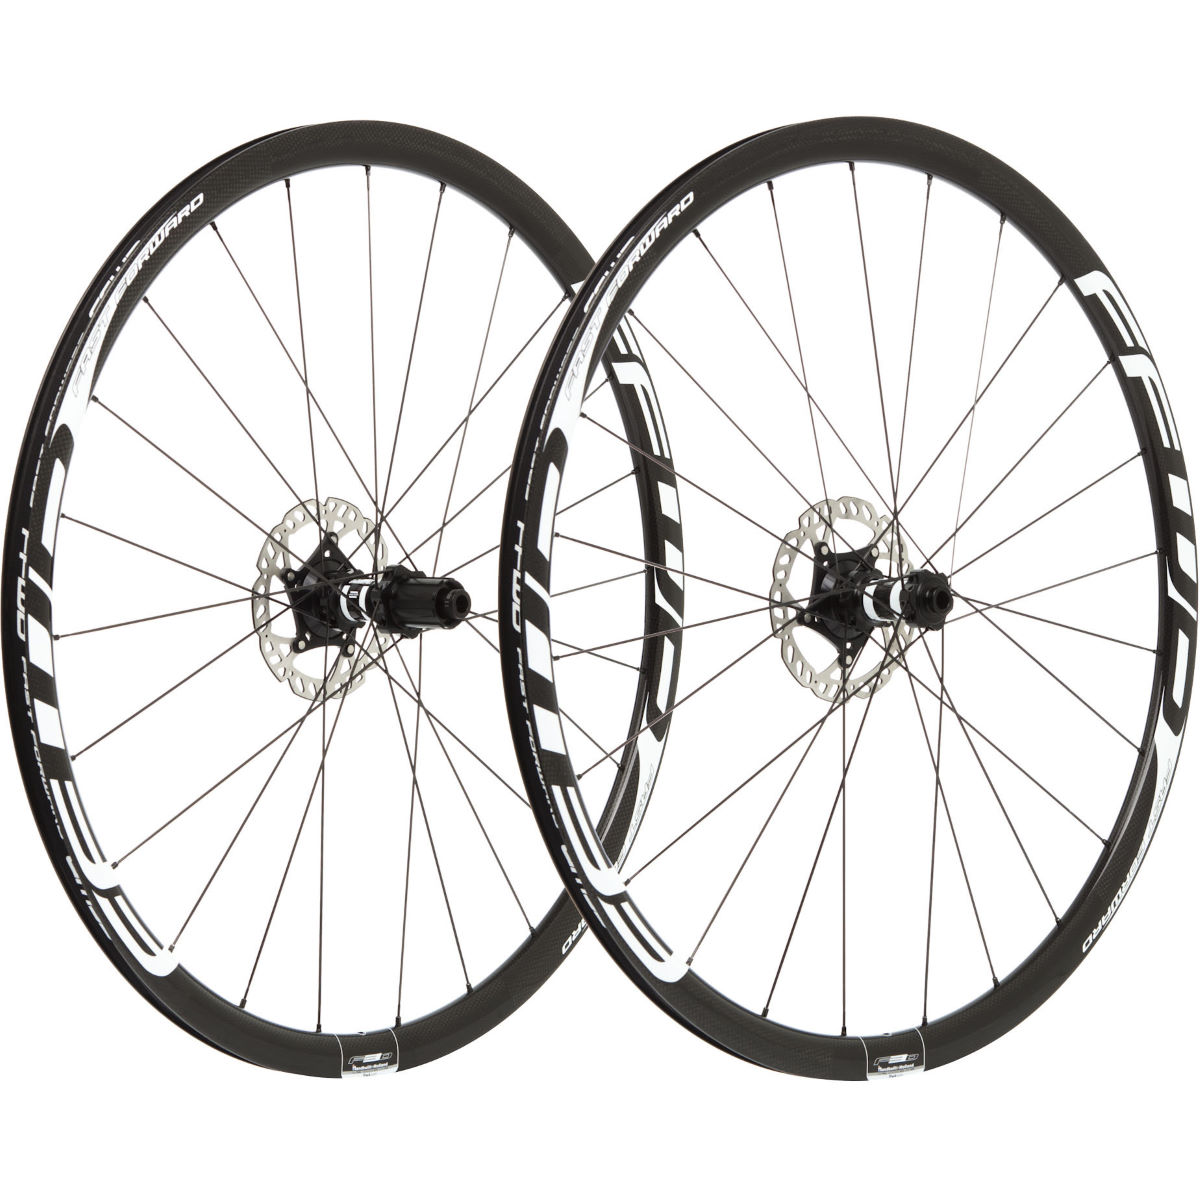 Fast Forward Carbon F3D FCC 30mm SP DB Wheelset - Juegos de ruedas